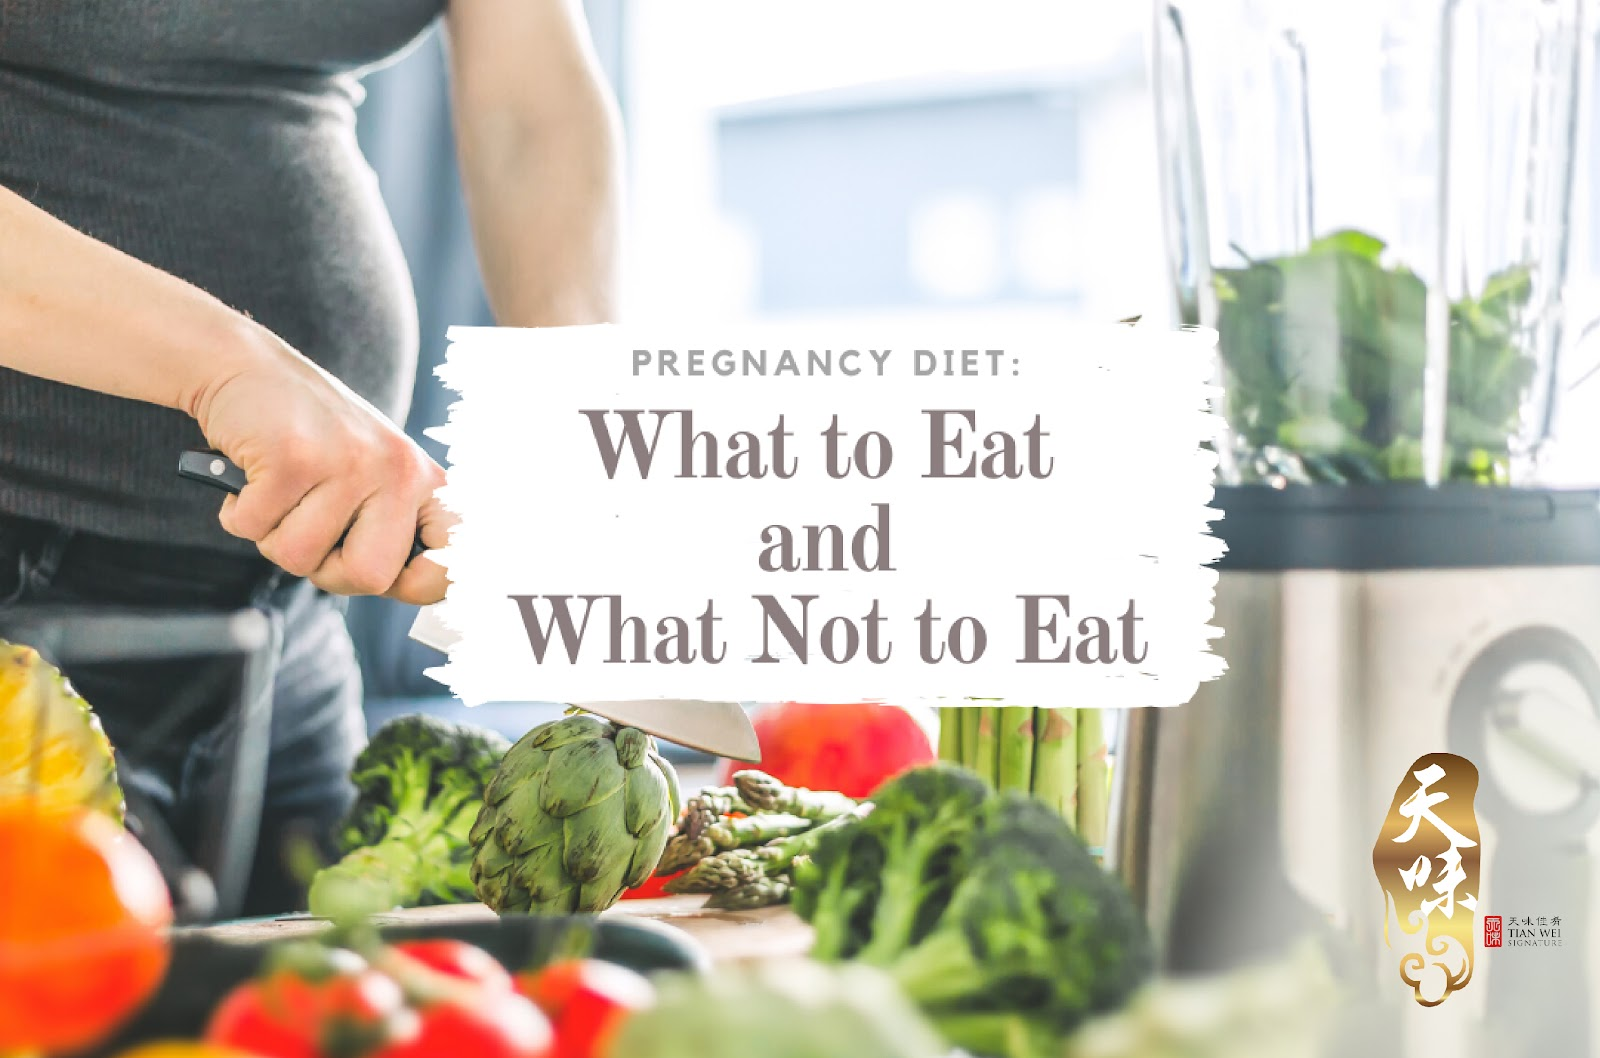 Pregnancy Diet: What to Eat and What Not to Eat